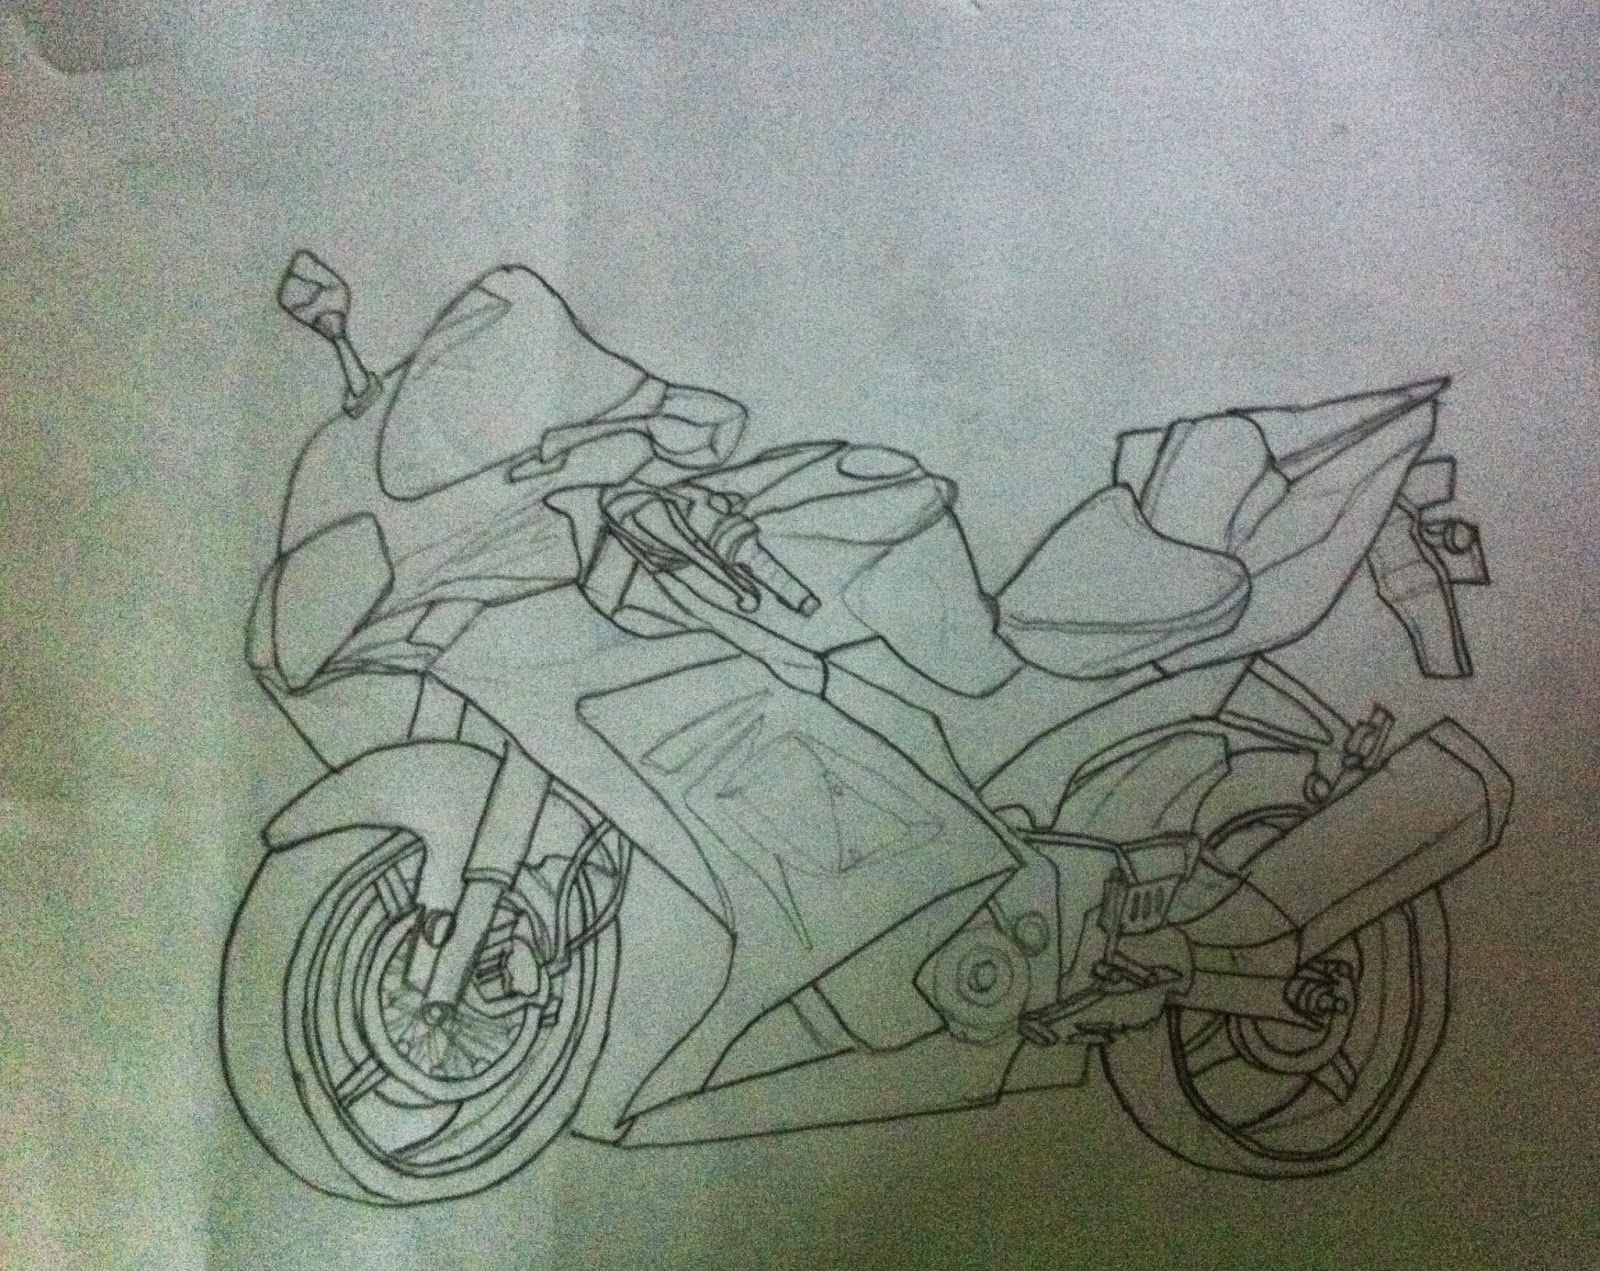 Drawn bike sketch Sketch Shading Techniques Make Drawing